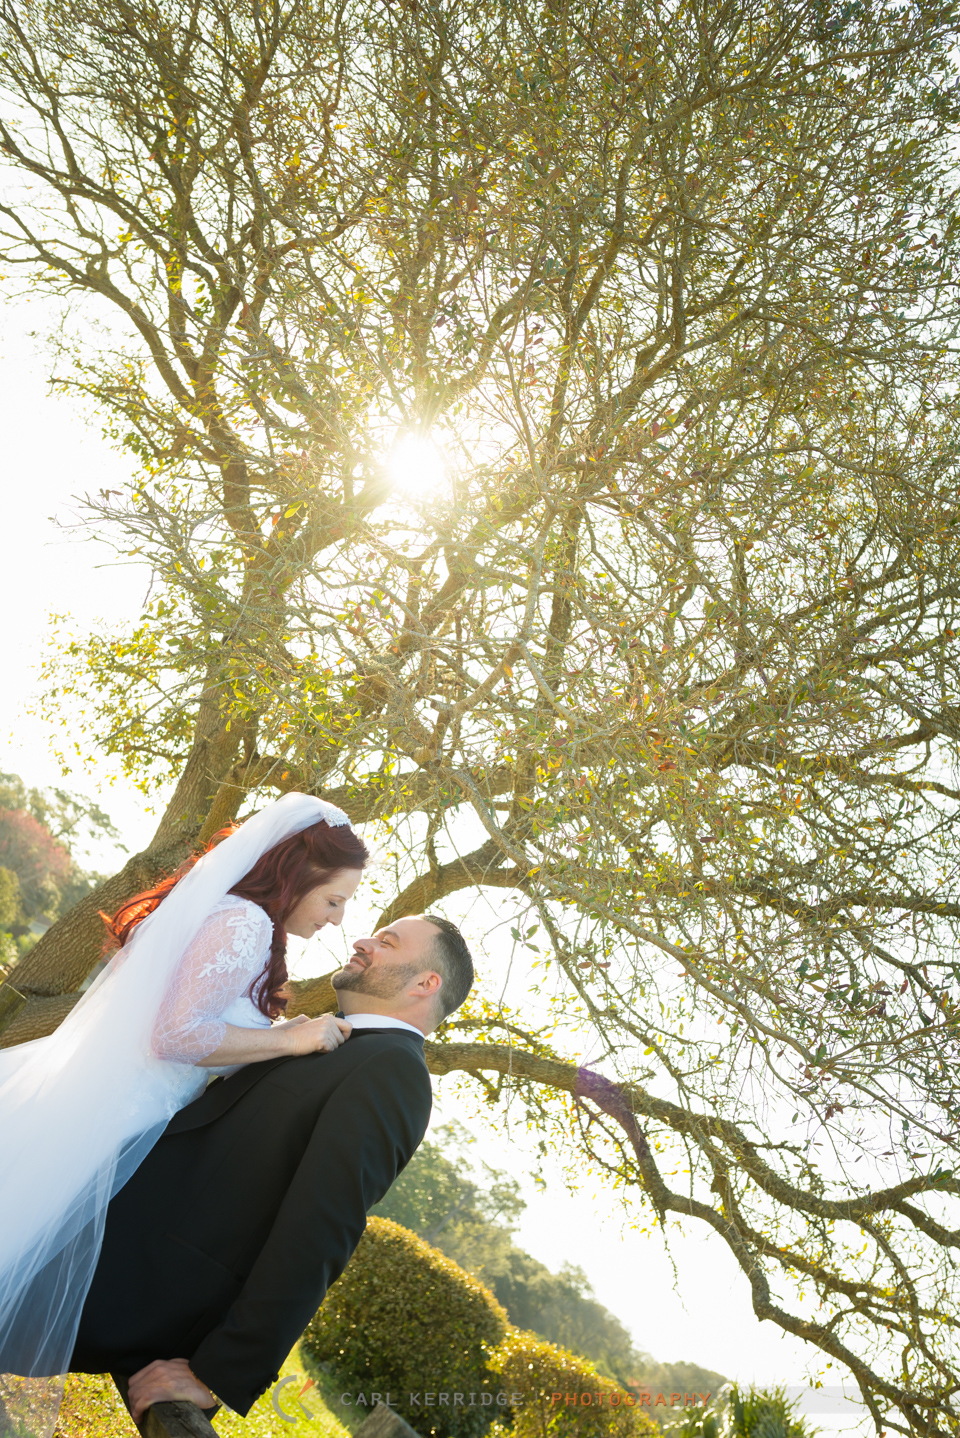 Myrtle Beach wedding, portraits, bride and groom fine art photography, bride looking lovingly at her groom under a blossoming tree's branches, sun shining through branches, groom leaning against fence at Hilton Myrtle Beach